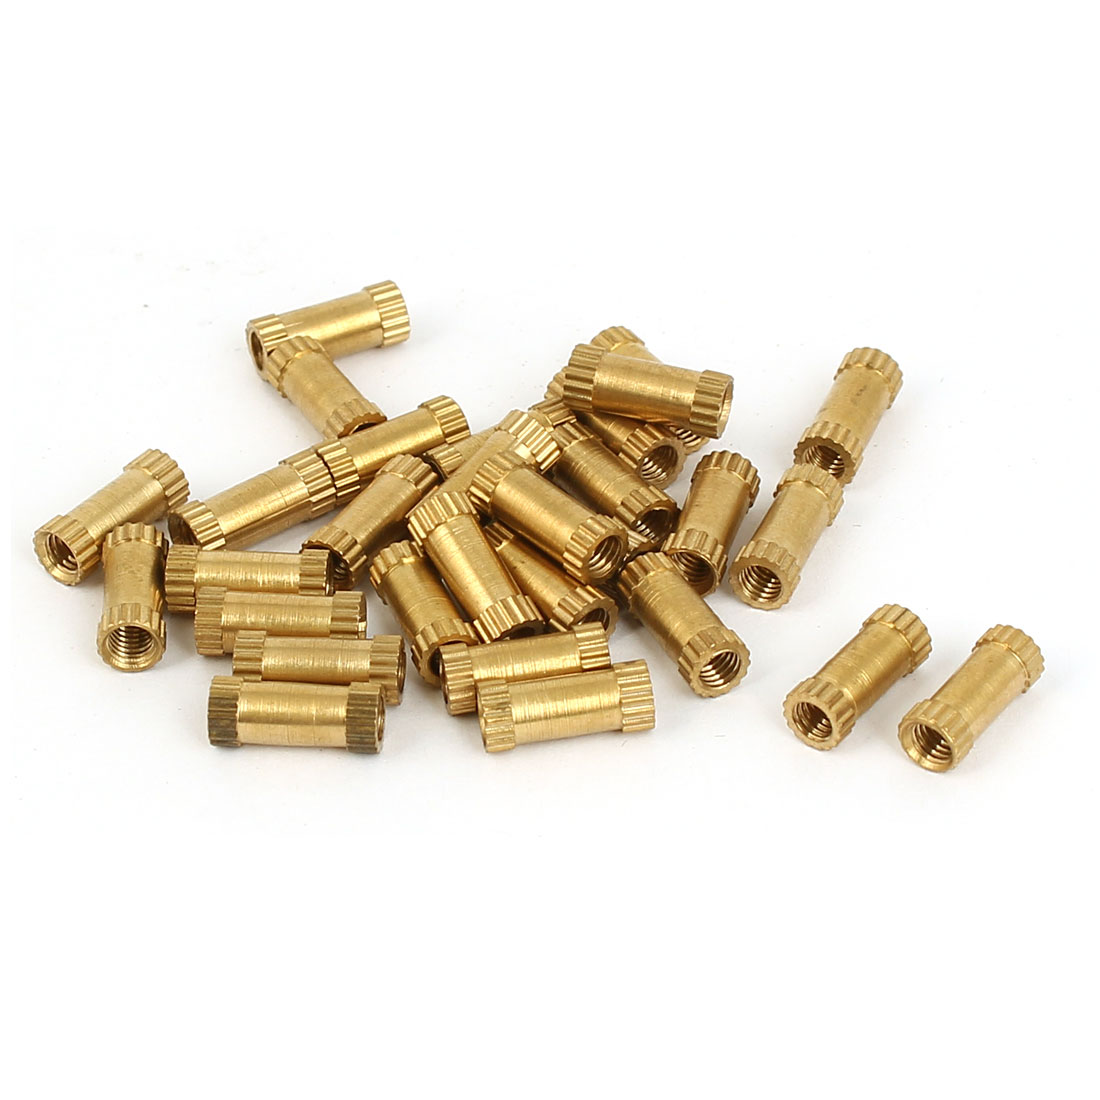 M3 x 4mm x 10mm Female Threaded Insert Embedded Brass Knurled Thumb Nuts 30 Pcs